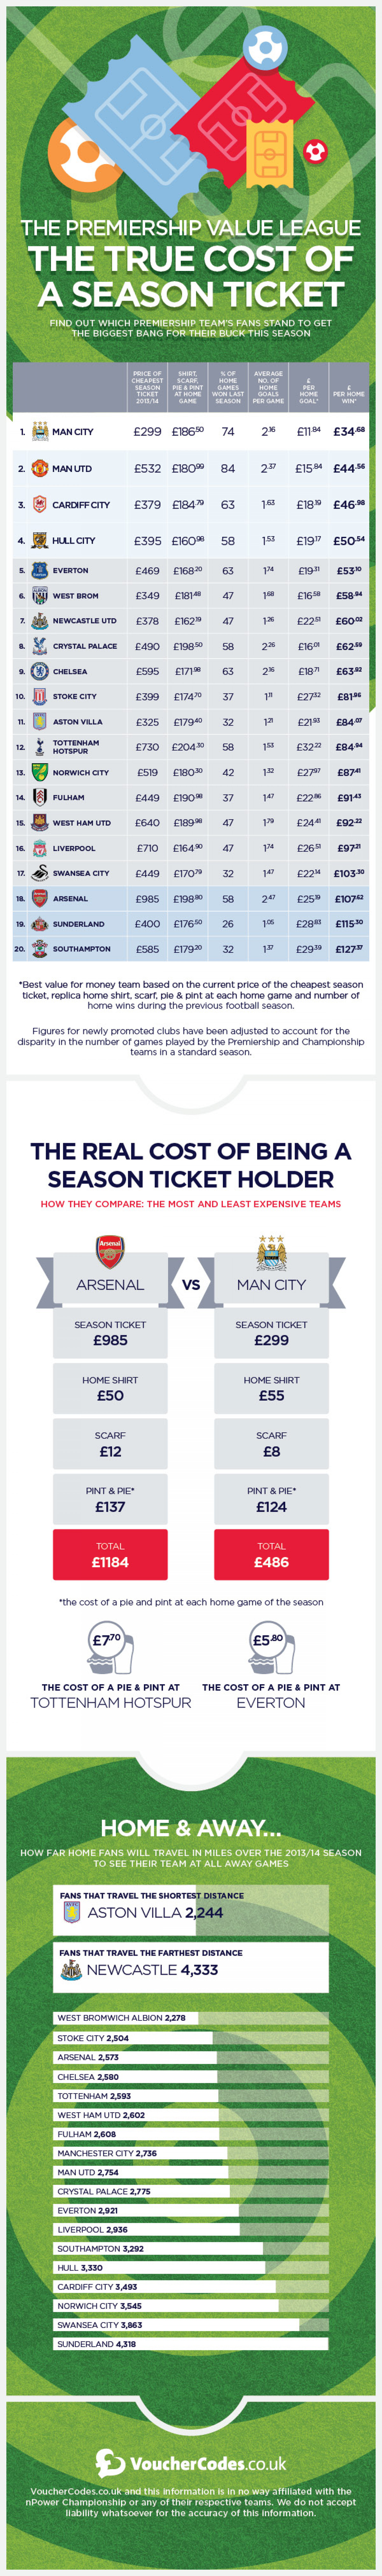 The True Cost of a season Ticket - Premier League Edition Infographic